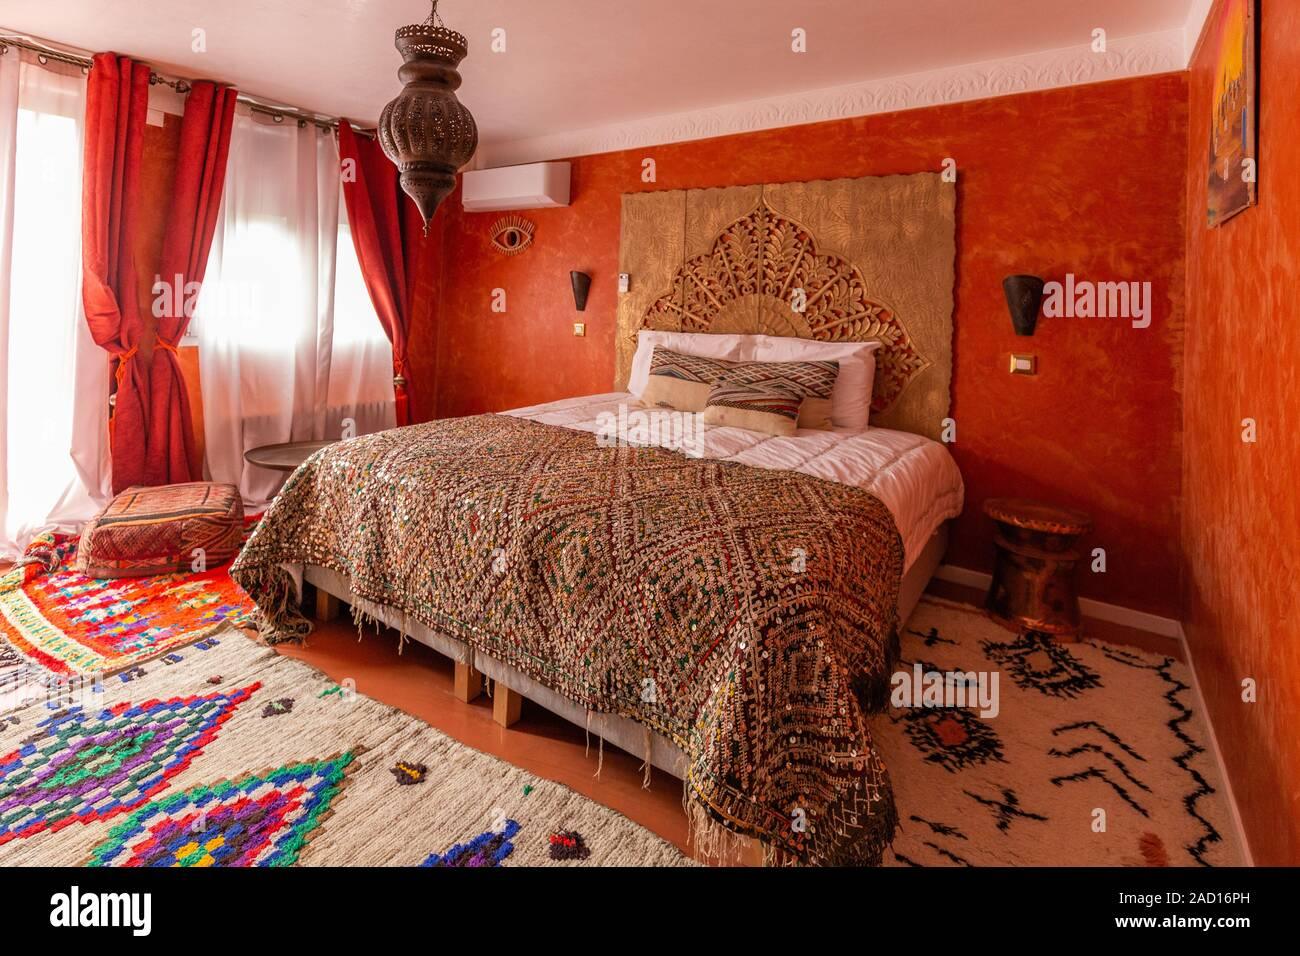 Beautiful Design Of An Oriental Interior Of A Bedroom With Kingsize Bed Wooden Bedboard And Furniture Stock Photo Alamy